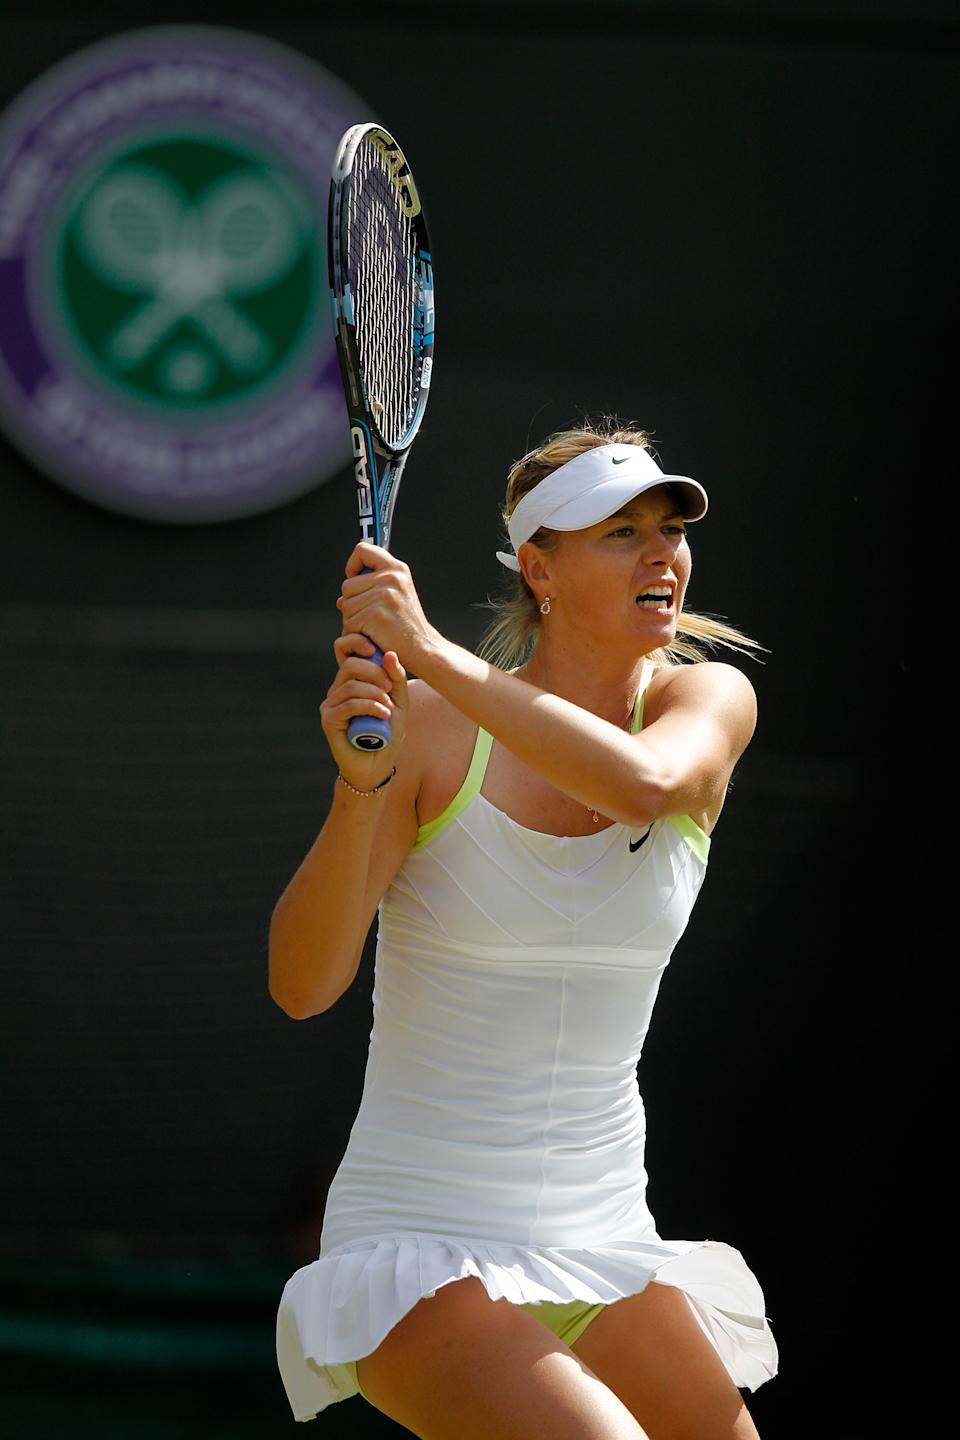 Former Wimbledon Champion Maria Sharapova has a distinct honor in London. She is the first female to carry the flag for Russia or the former Soviet Union.